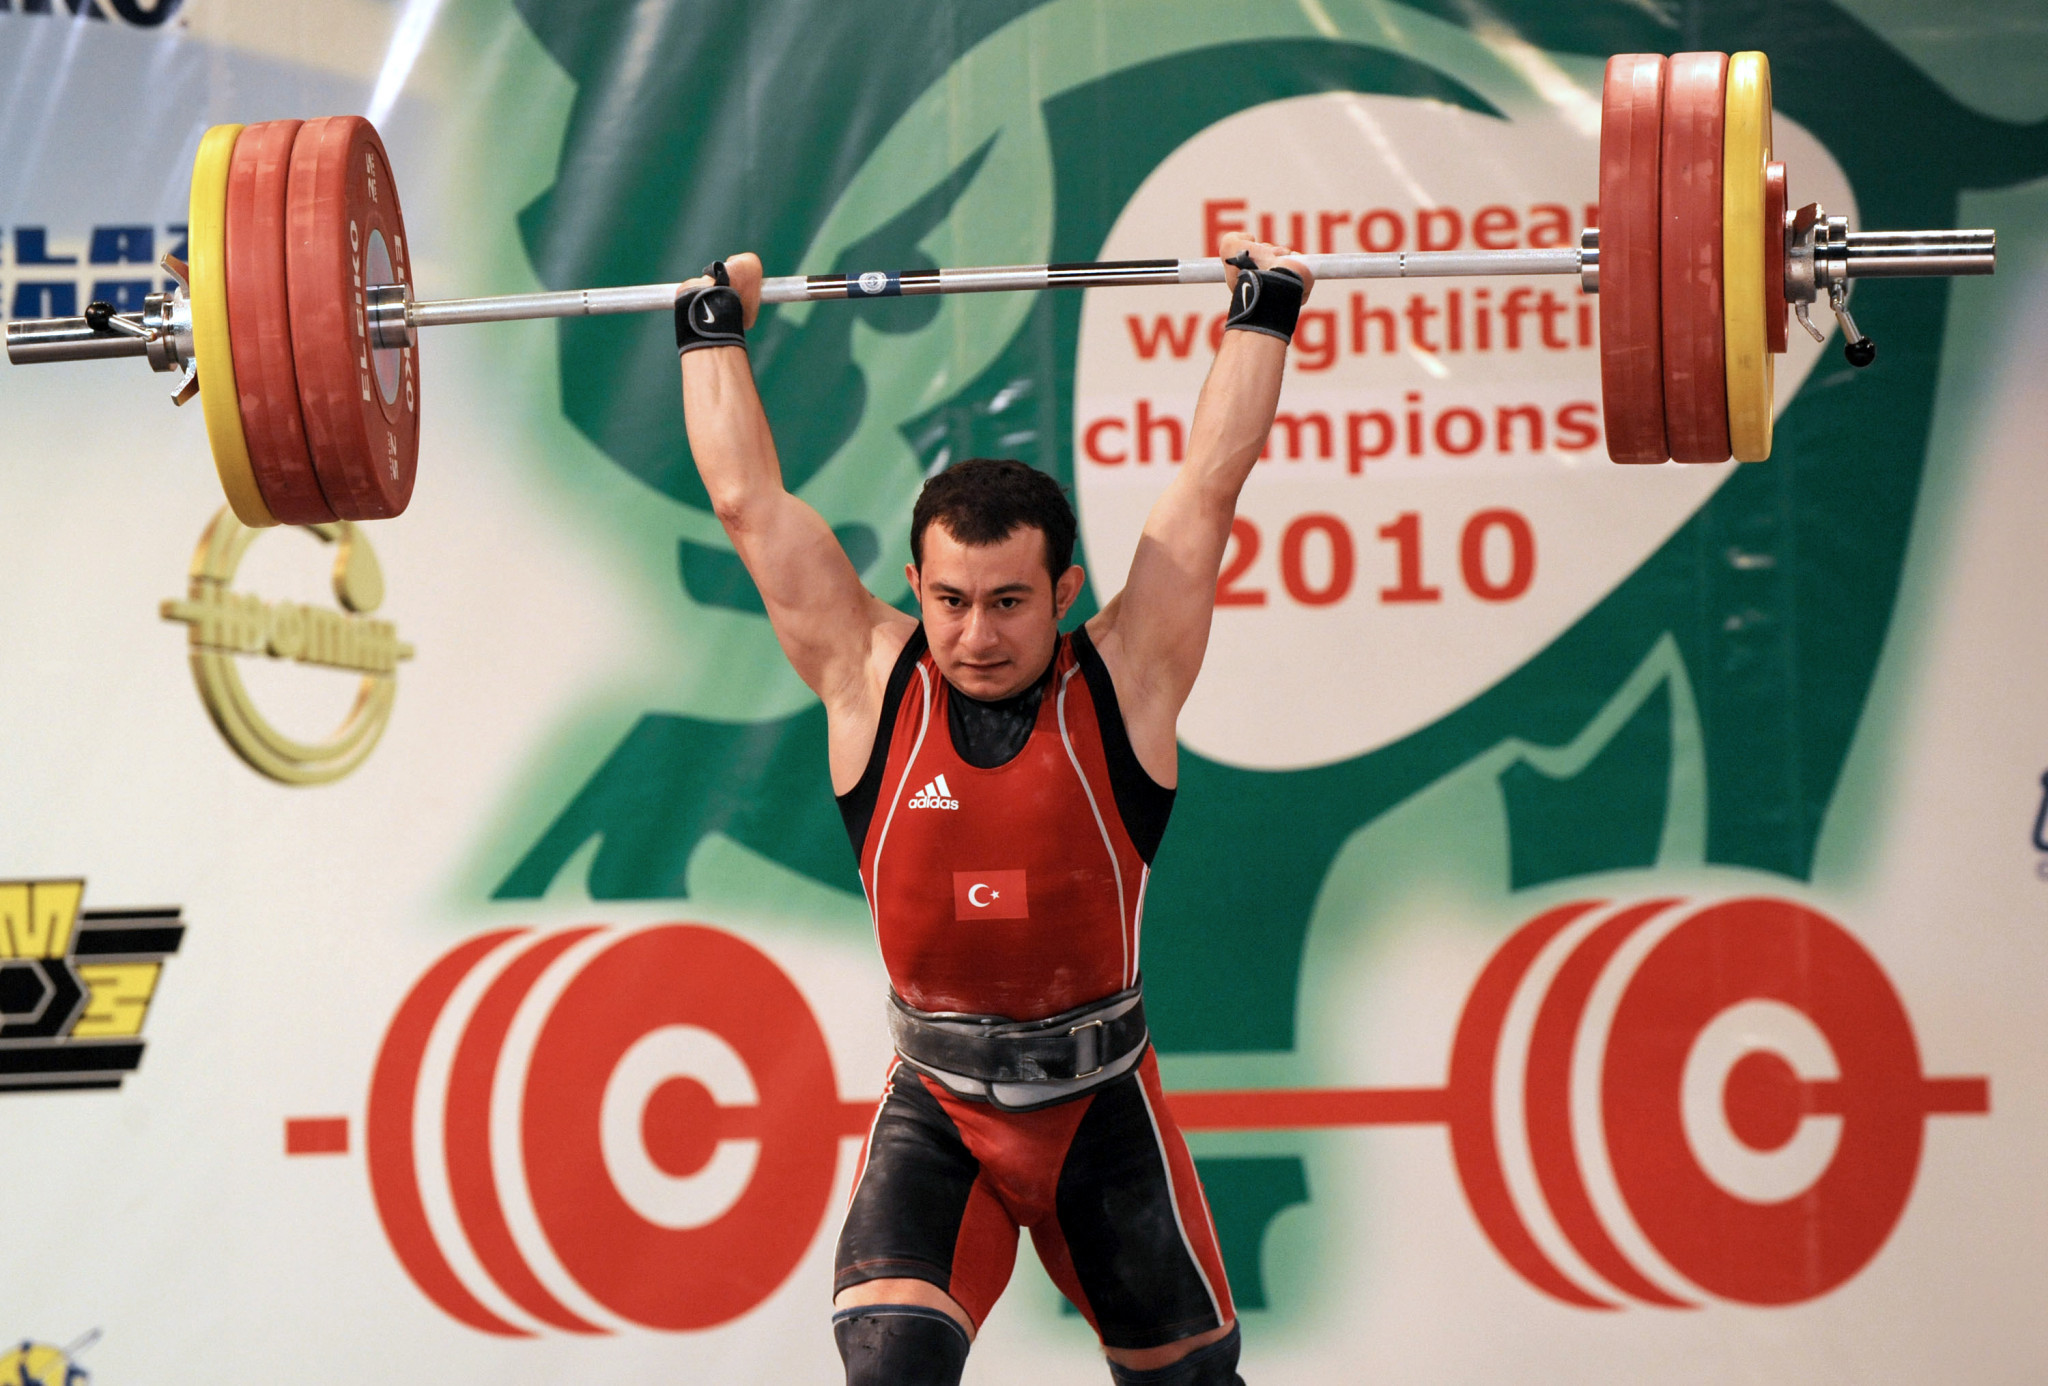 Erol Bilgin claimed European weightlifting titles in 2009 and 2010 ©Getty Images